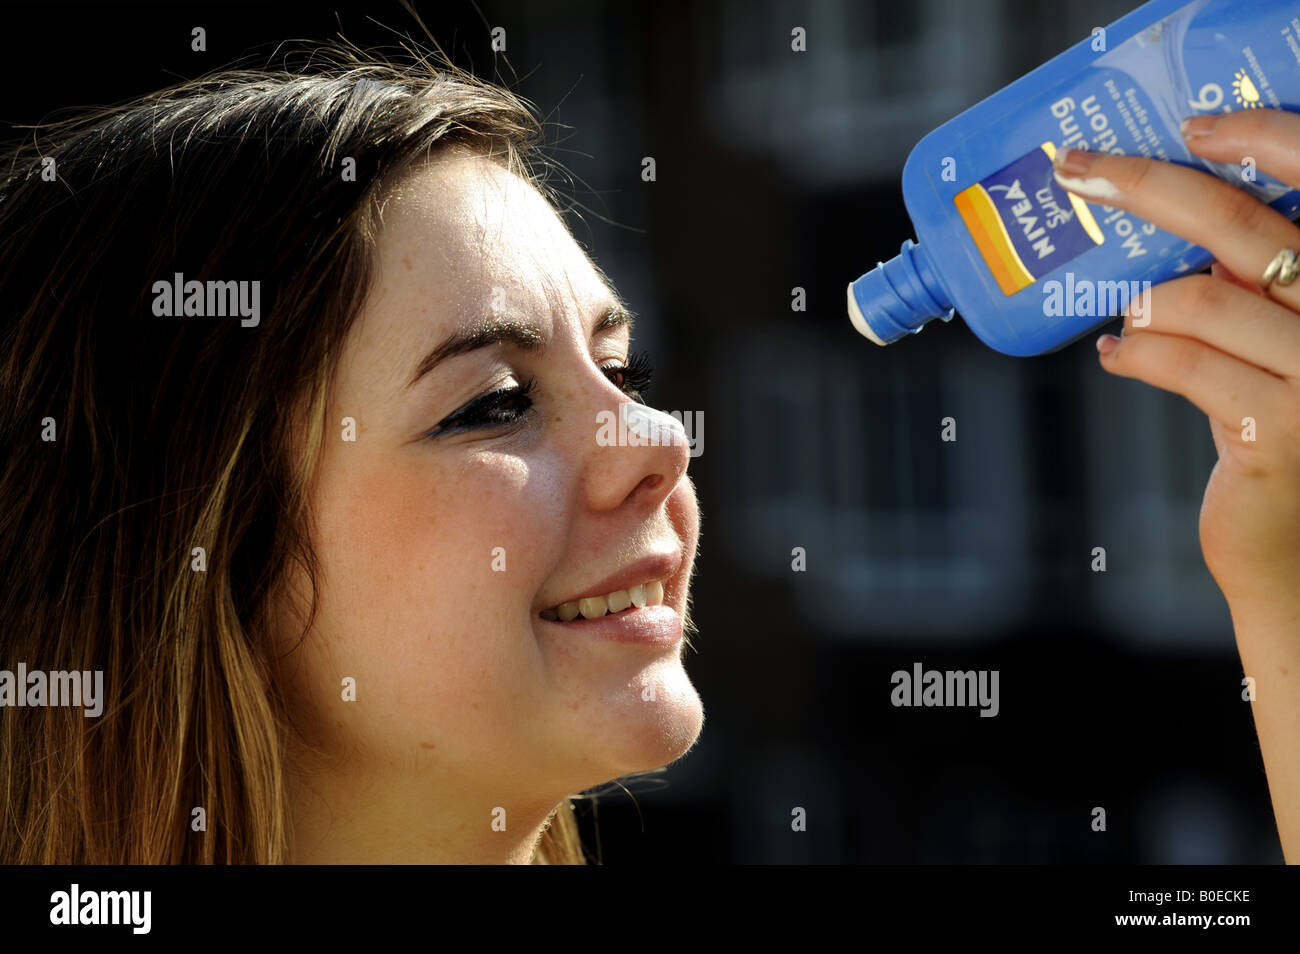 A teenage girl applies sun lotion to her face - Stock Image